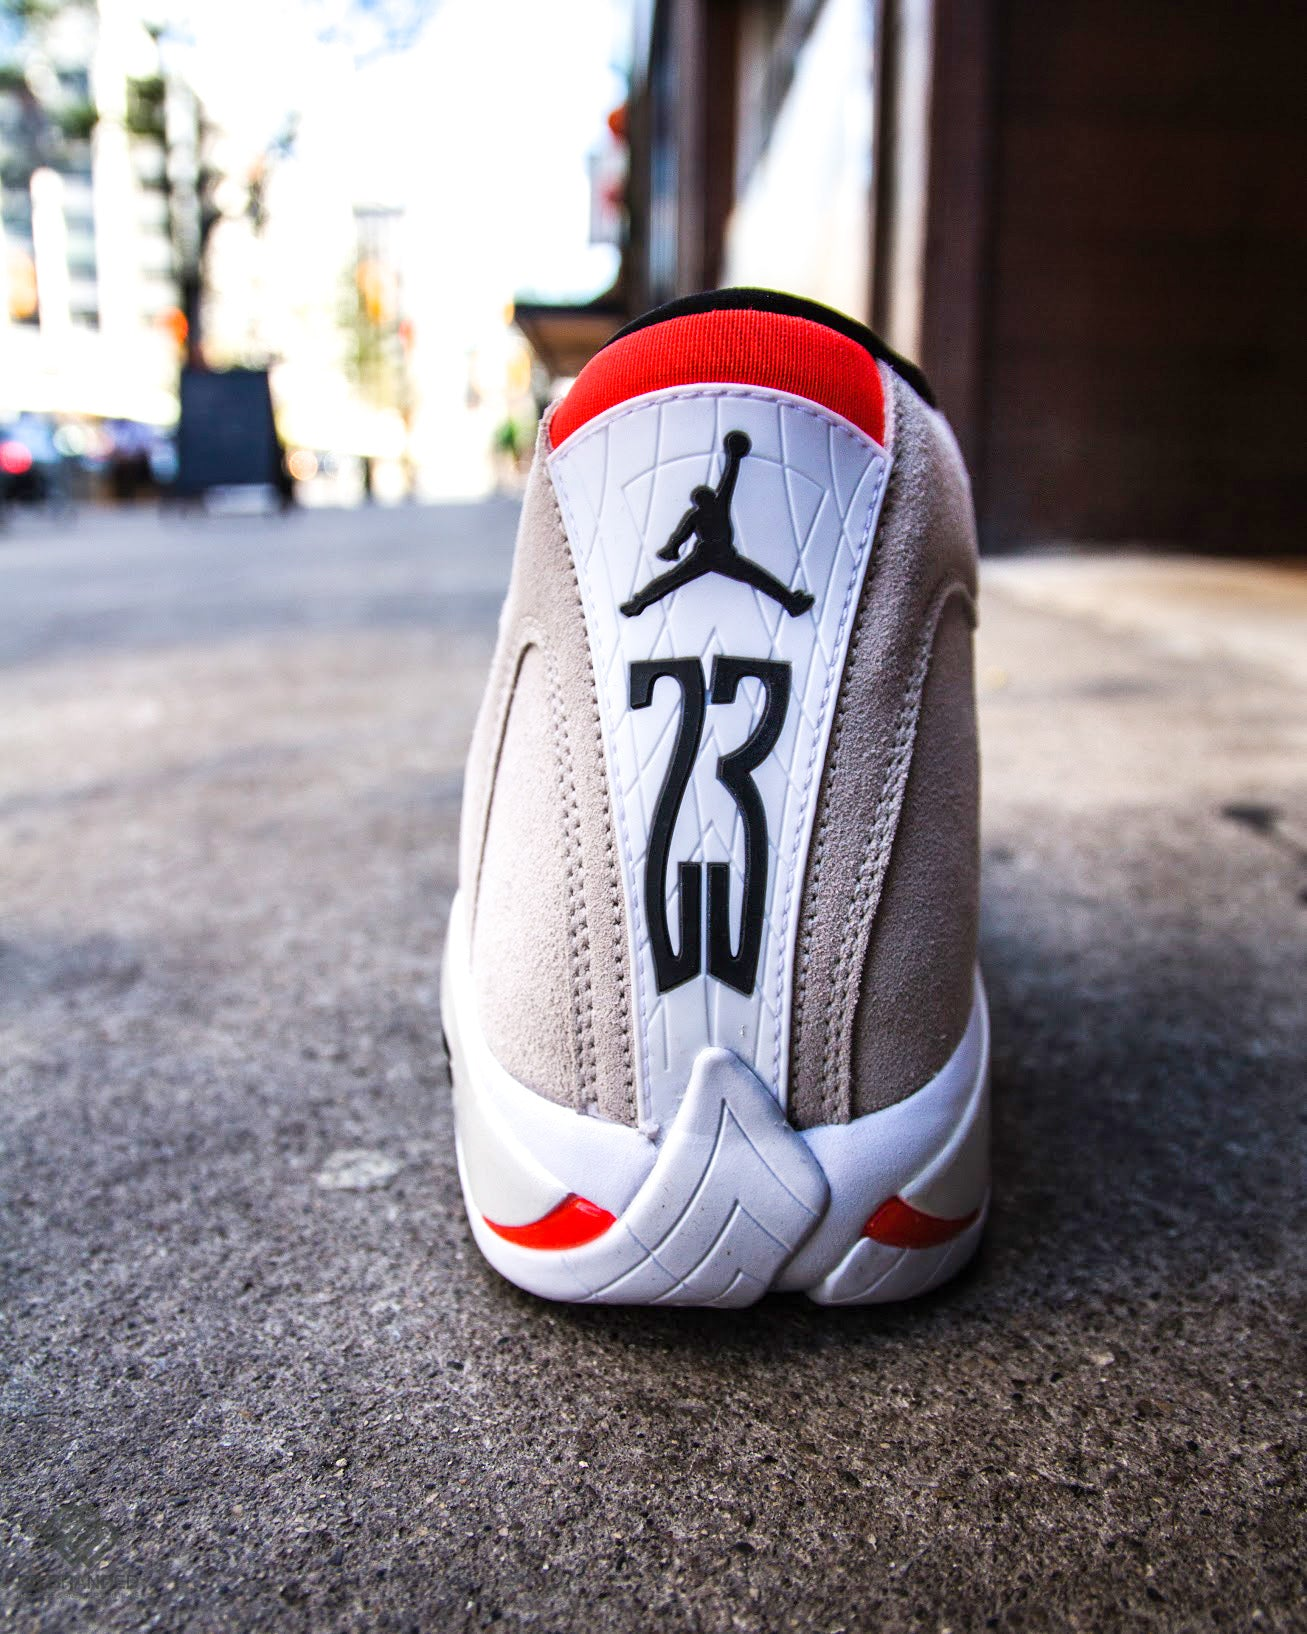 """the best attitude f5a43 2b0ae Air Jordan 14 """"Desert Sand"""". May 12, 2018 0 Comments. Air Jordan 14 """"Desert  Sand"""". Michael Jordan s last-ever signature sneaker while playing with the  Bulls ..."""